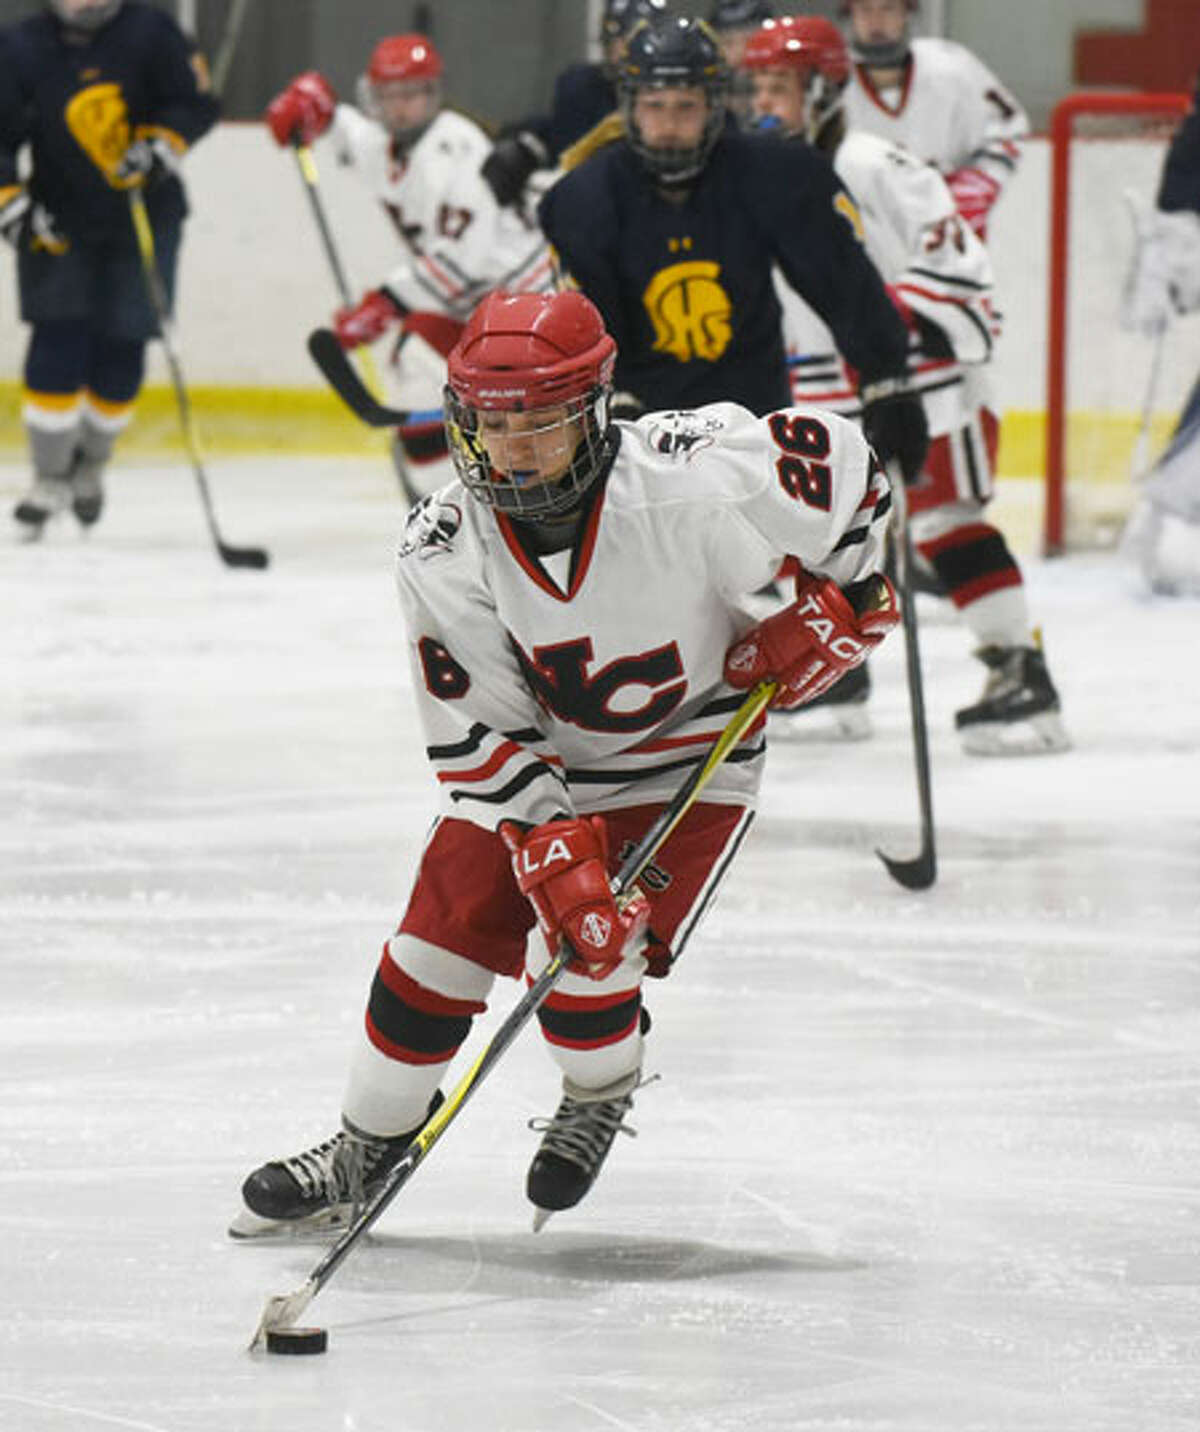 New Canaan's Sophie Potter controls the puck in the offensive zone. - Dave Stewart photo